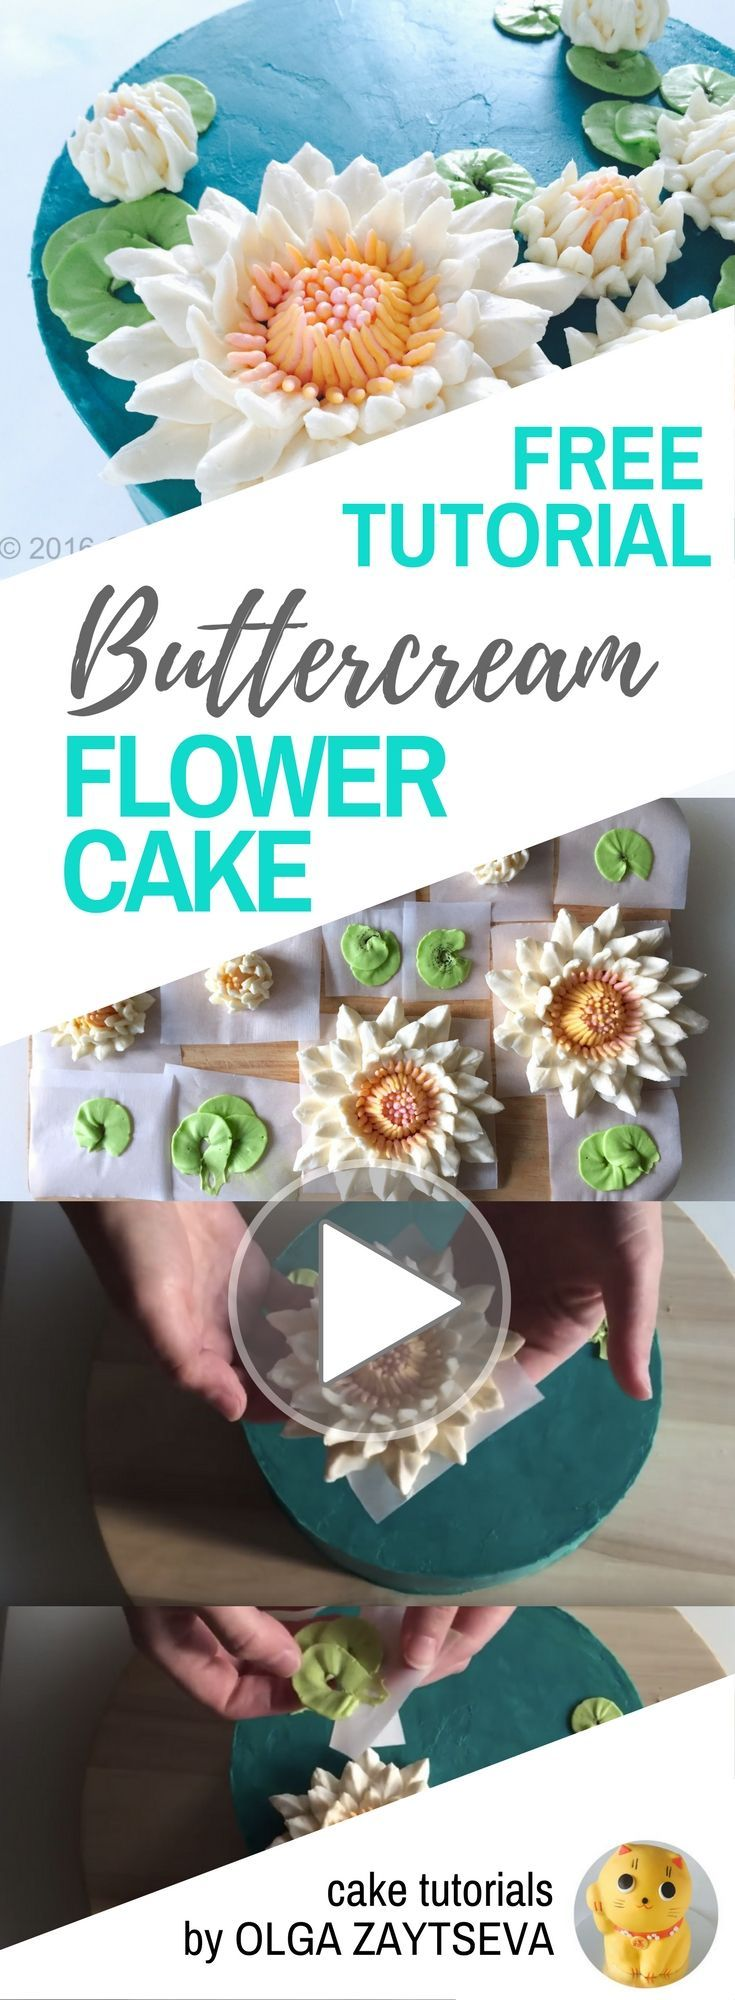 HOT CAKE TRENDS How to make Buttercream Water Lily cake - Cake decorating tutorial by Olga Zaytseva. Learn how to make very trendy buttercream Water Lily flowers and create this gorgeous cake. #cakedecoratingtutorials